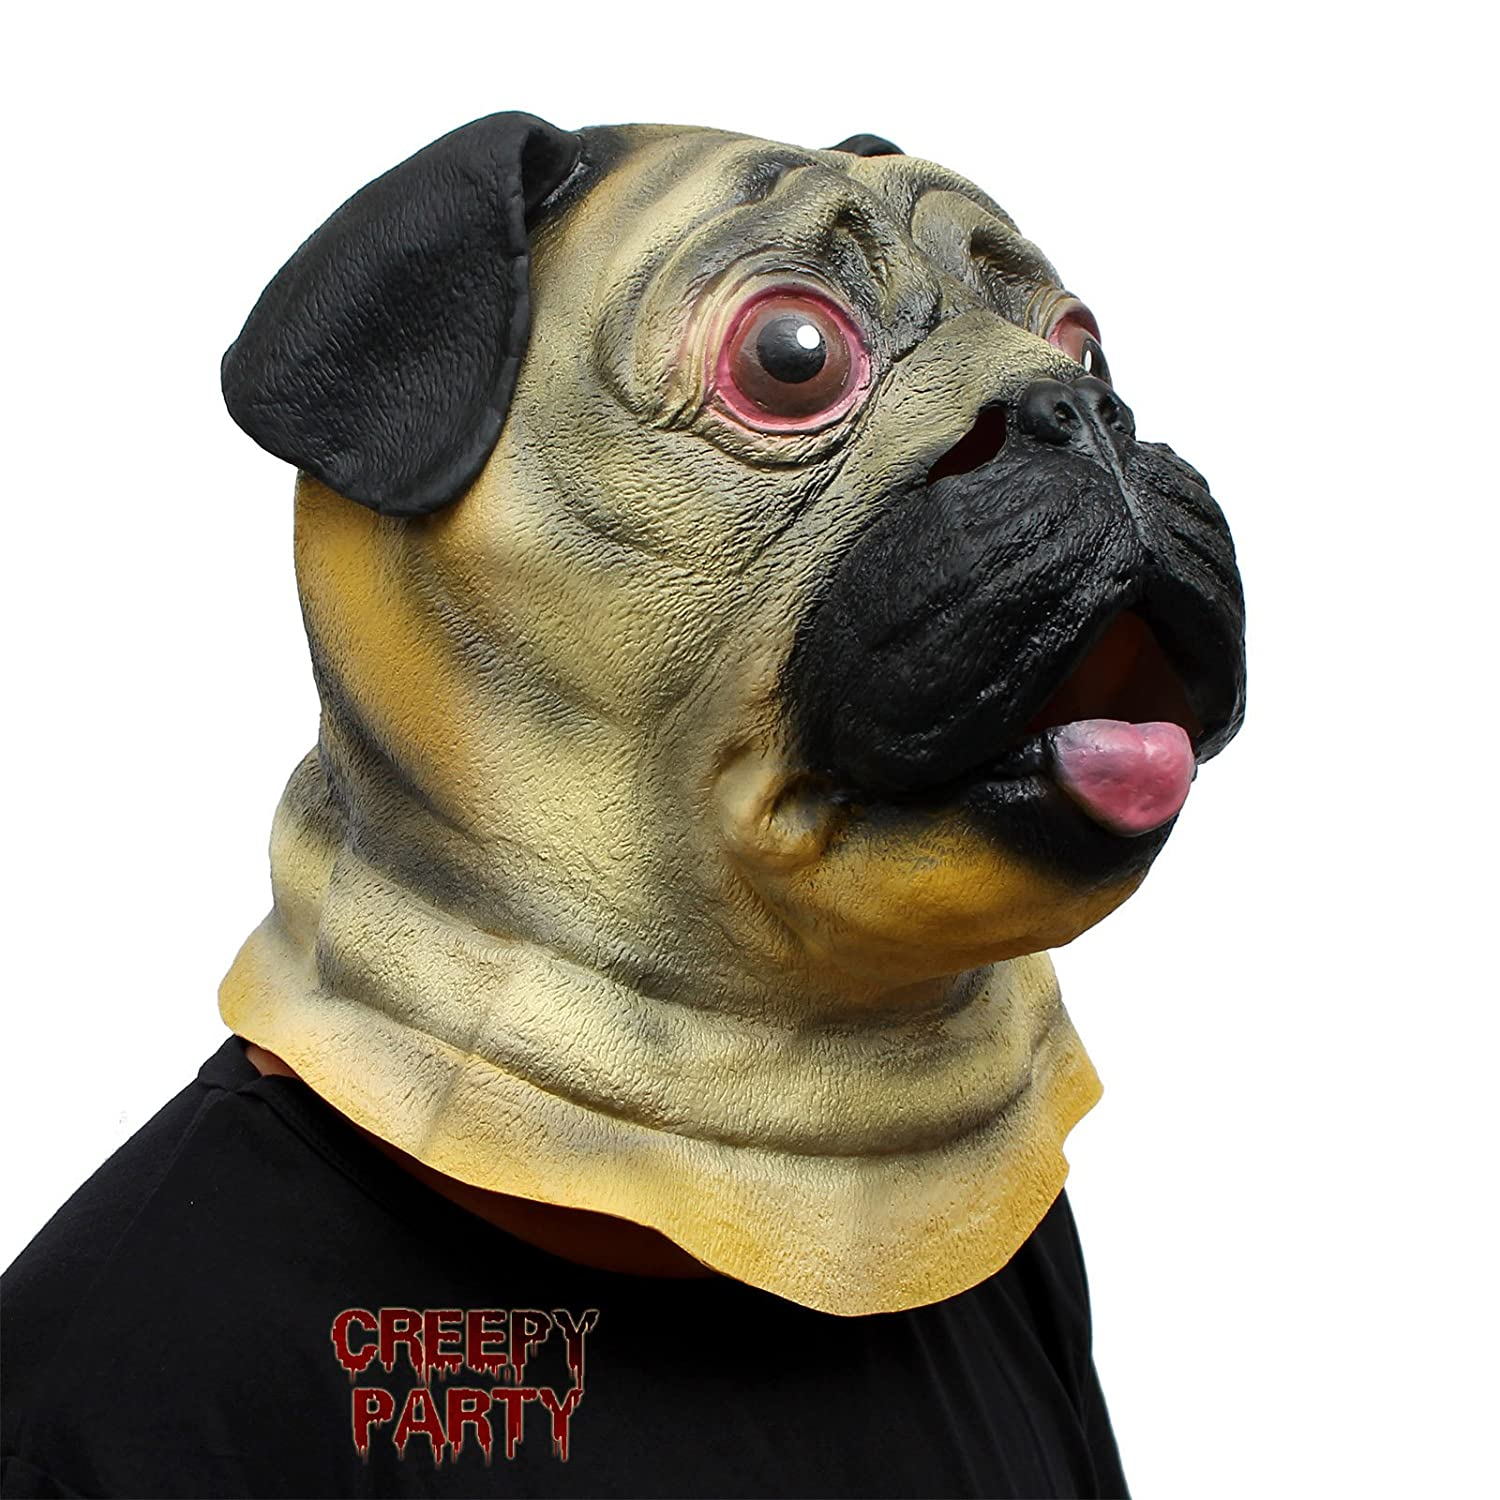 CreepyParty Deluxe Novelty Halloween Costume Party Latex Animal Head Mask Pug Dog Seaton STMask